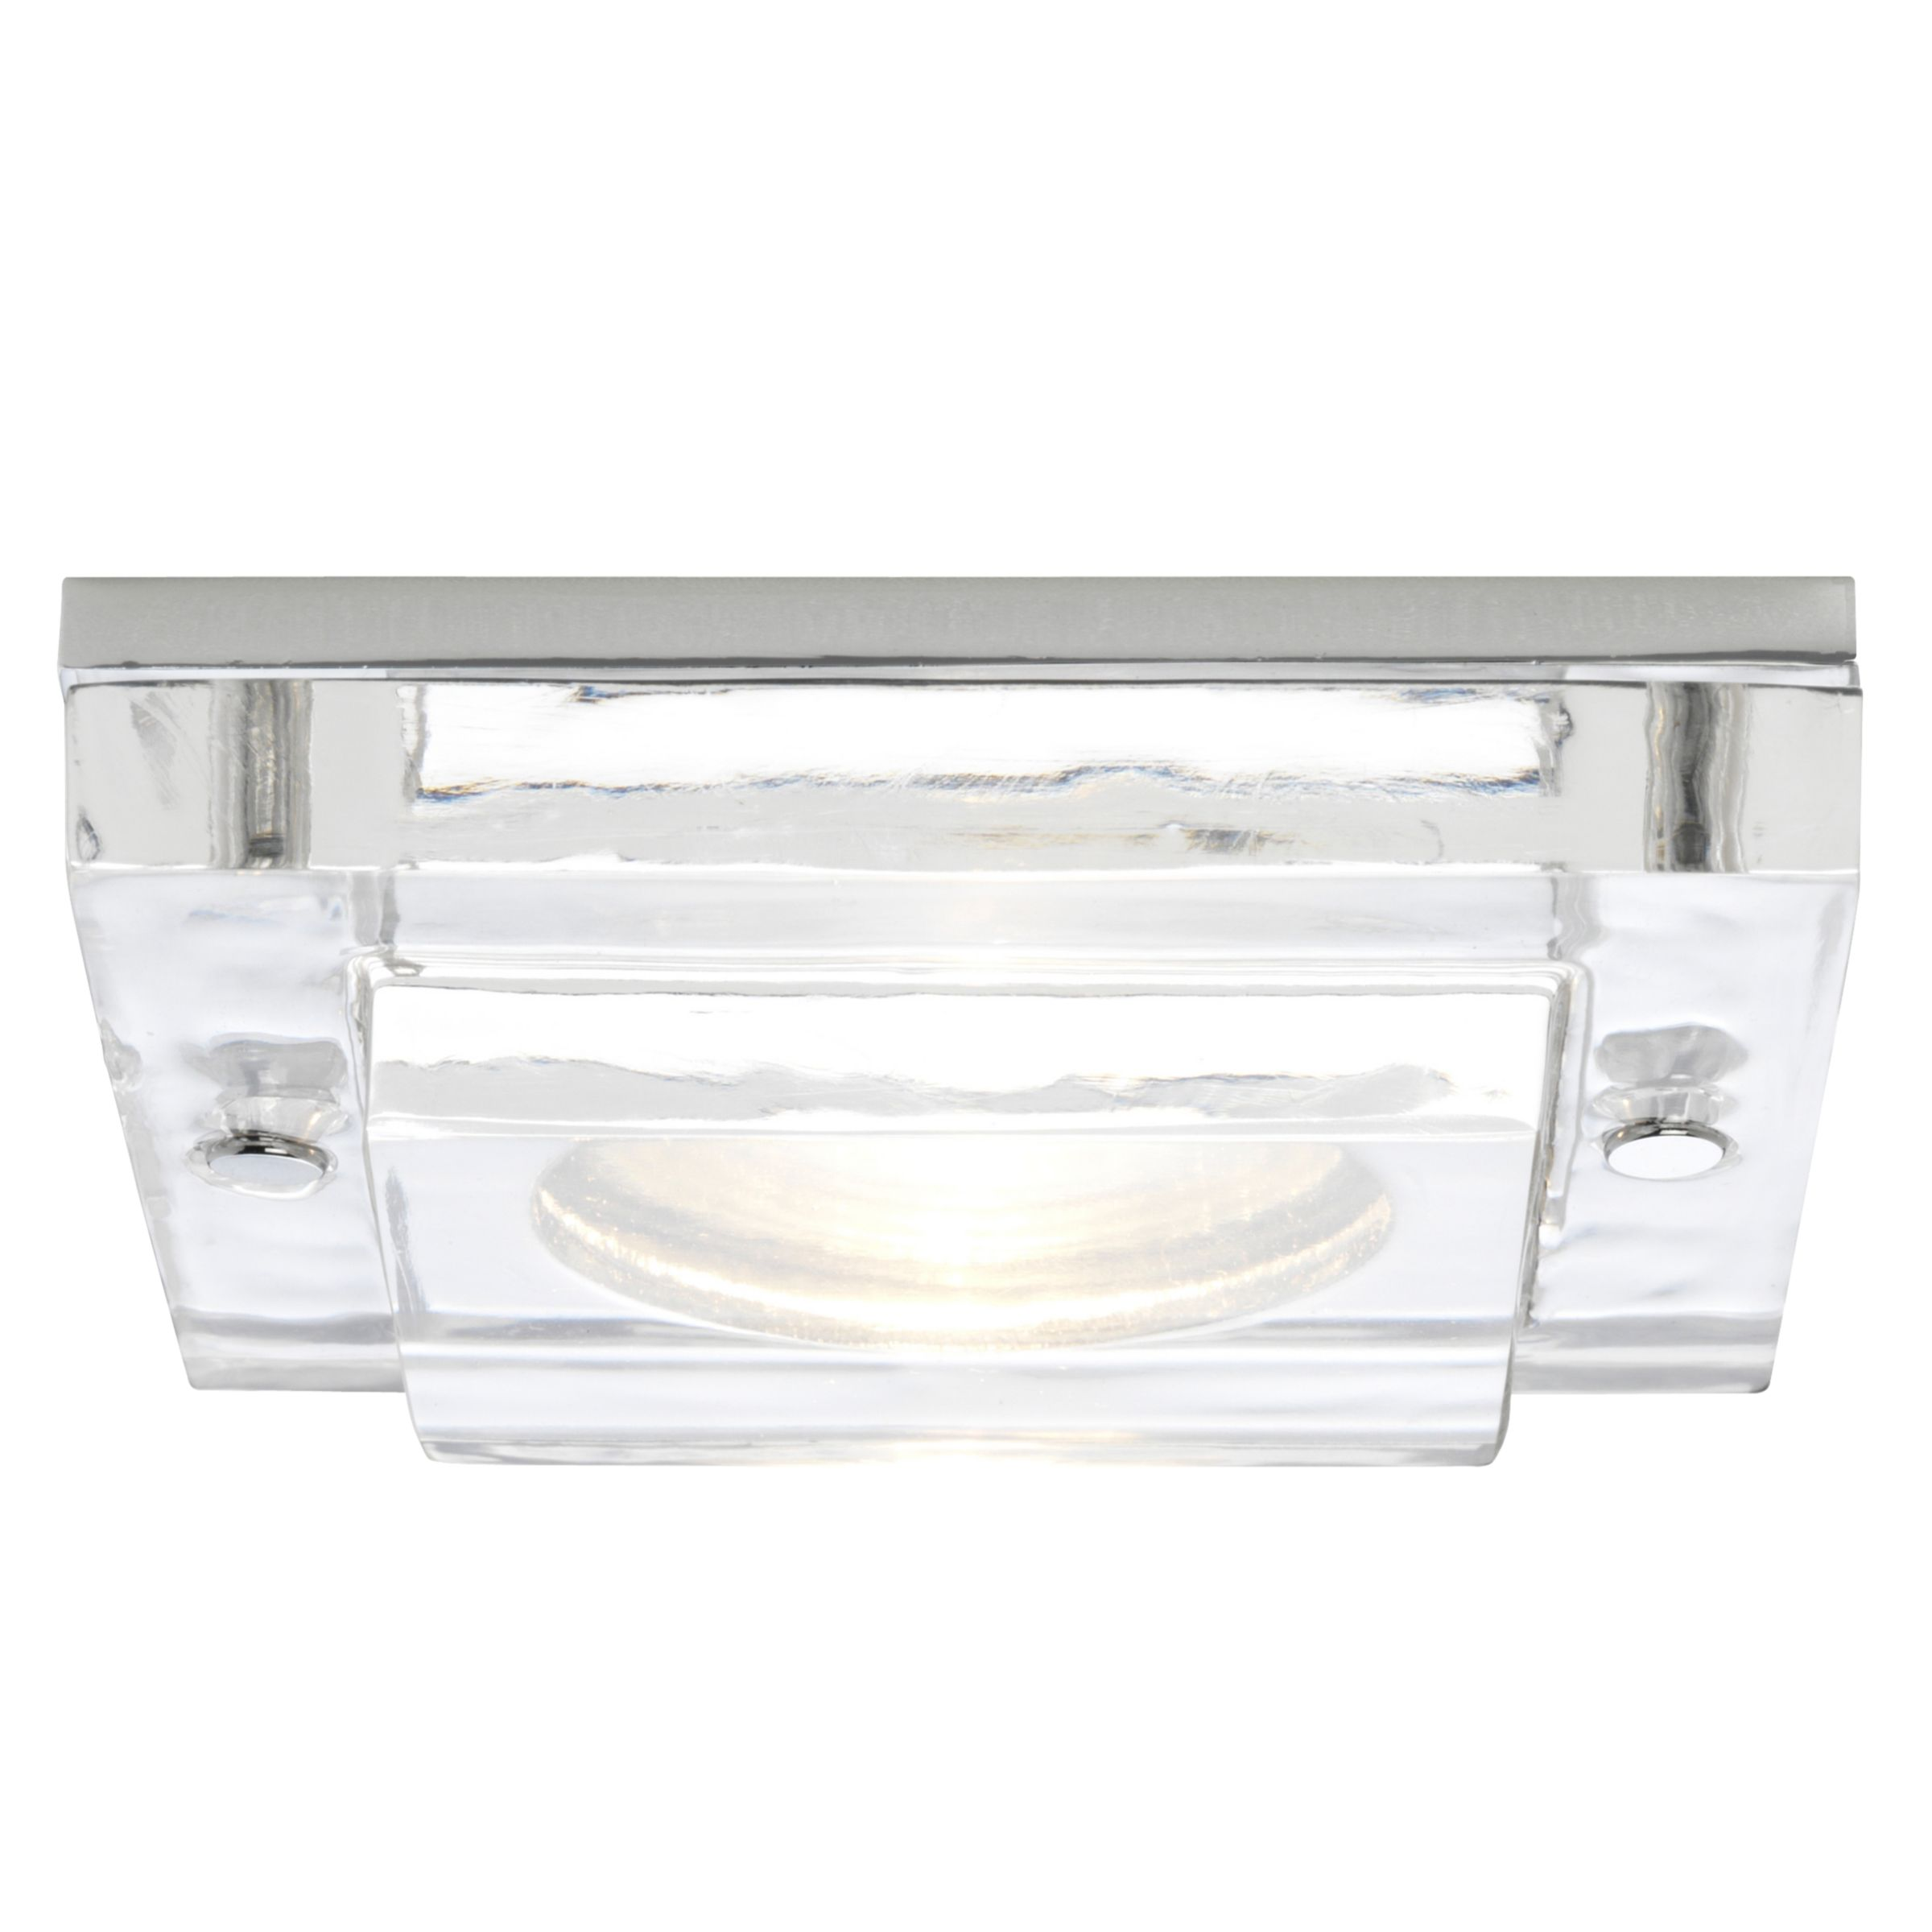 John lewis mint bathroom ceiling light review compare prices buy online John lewis bathroom design and fitting